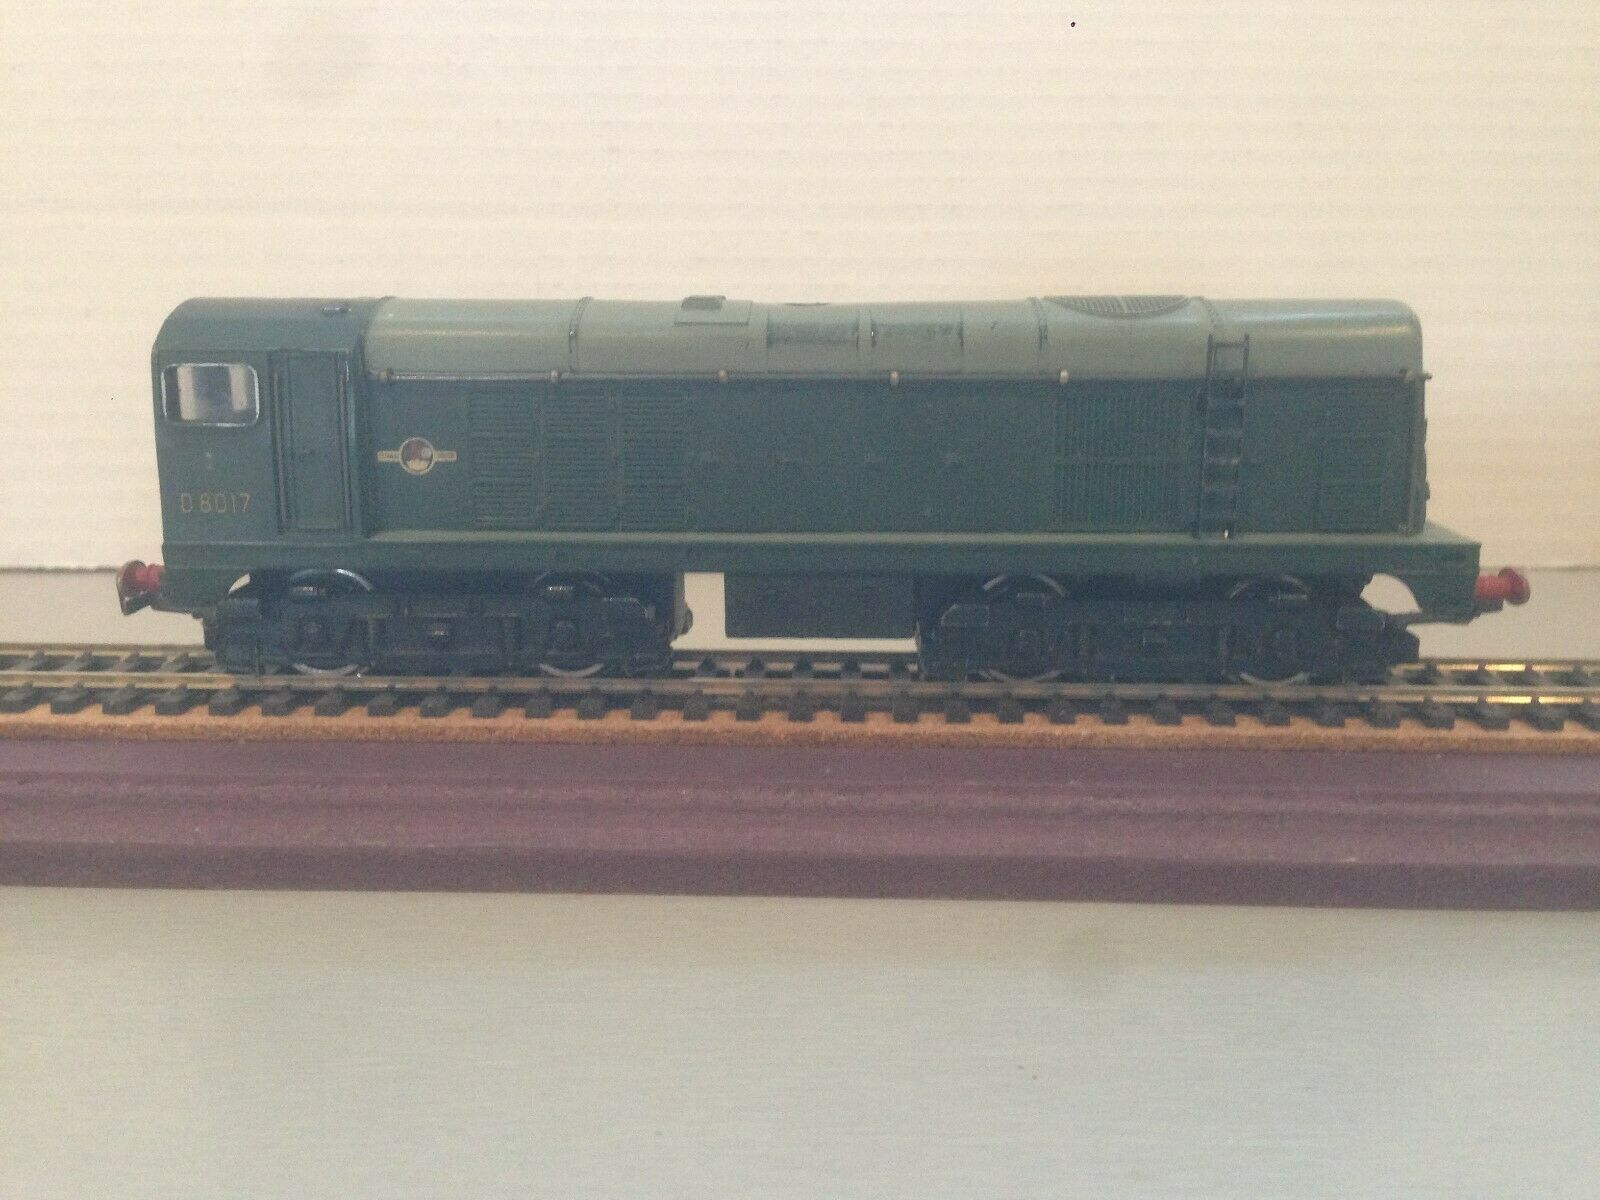 Hornby Dublo L30 Diesel BR verde, D8017, unscatolaed, tested lavoroing